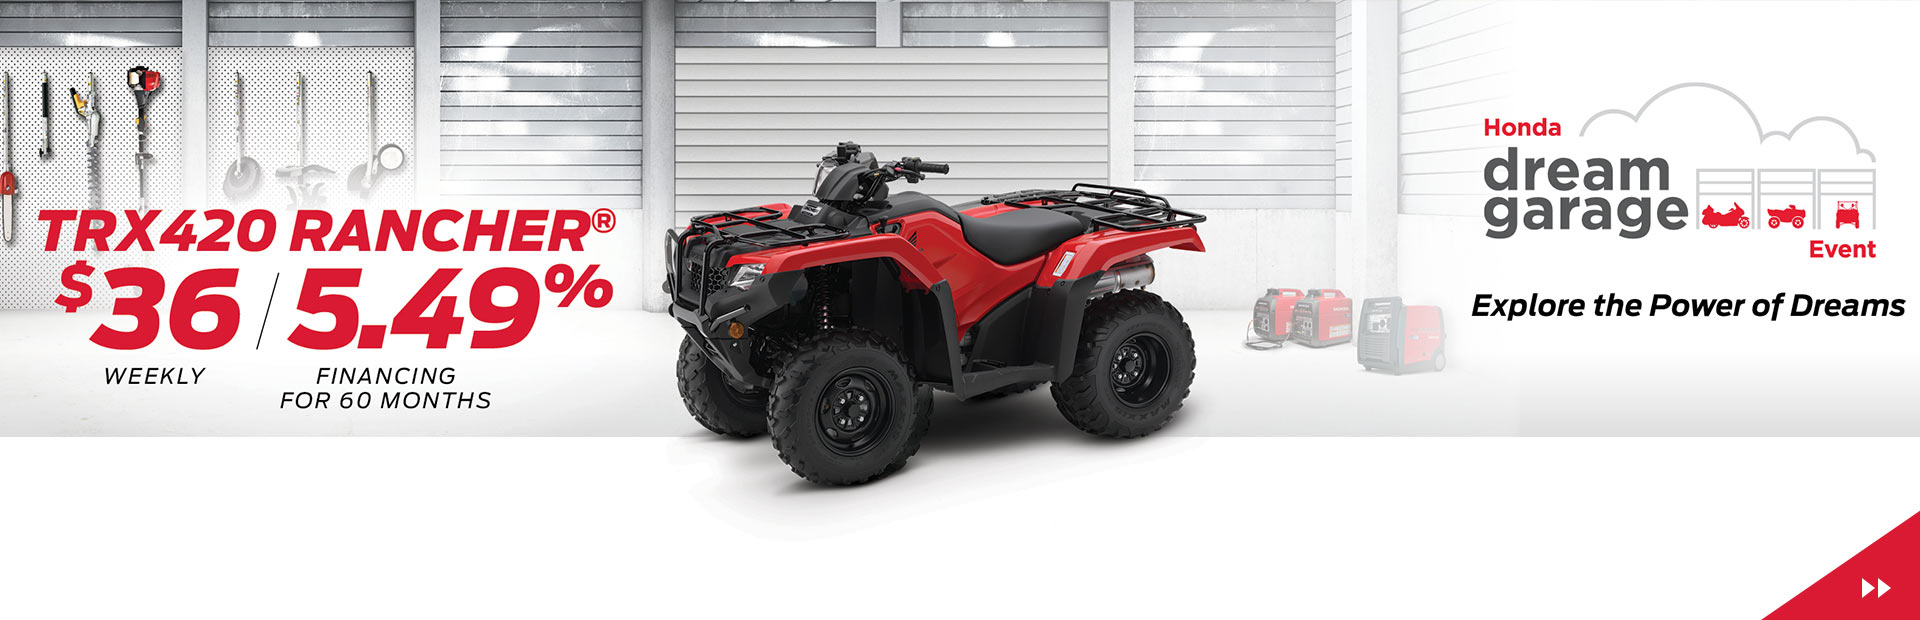 Get the TRX420 Rancher for $36 weekly with 5.49% Financing for 60 months!